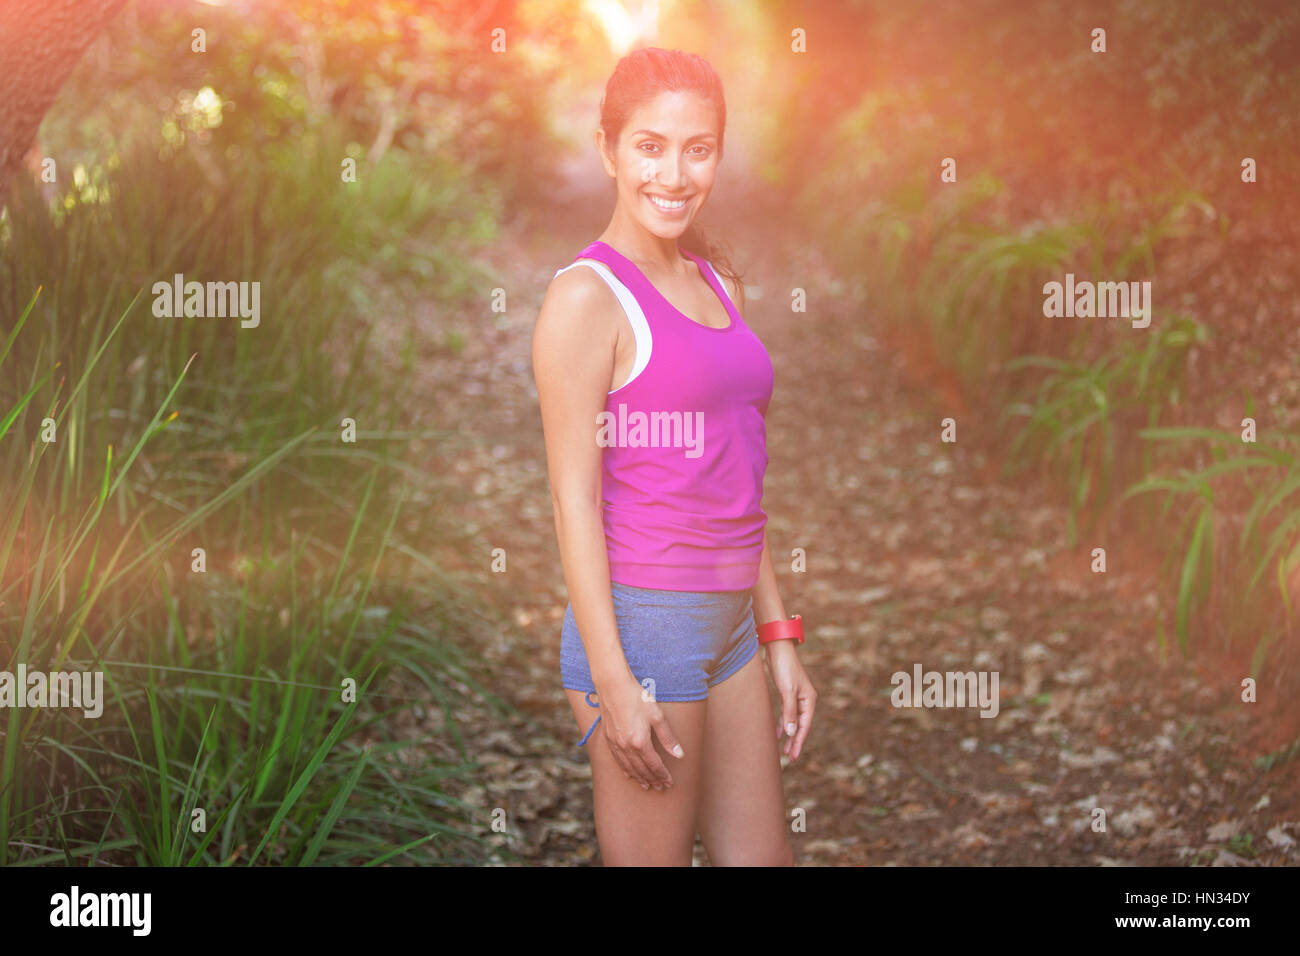 Smiling fit woman standing on field - Stock Image